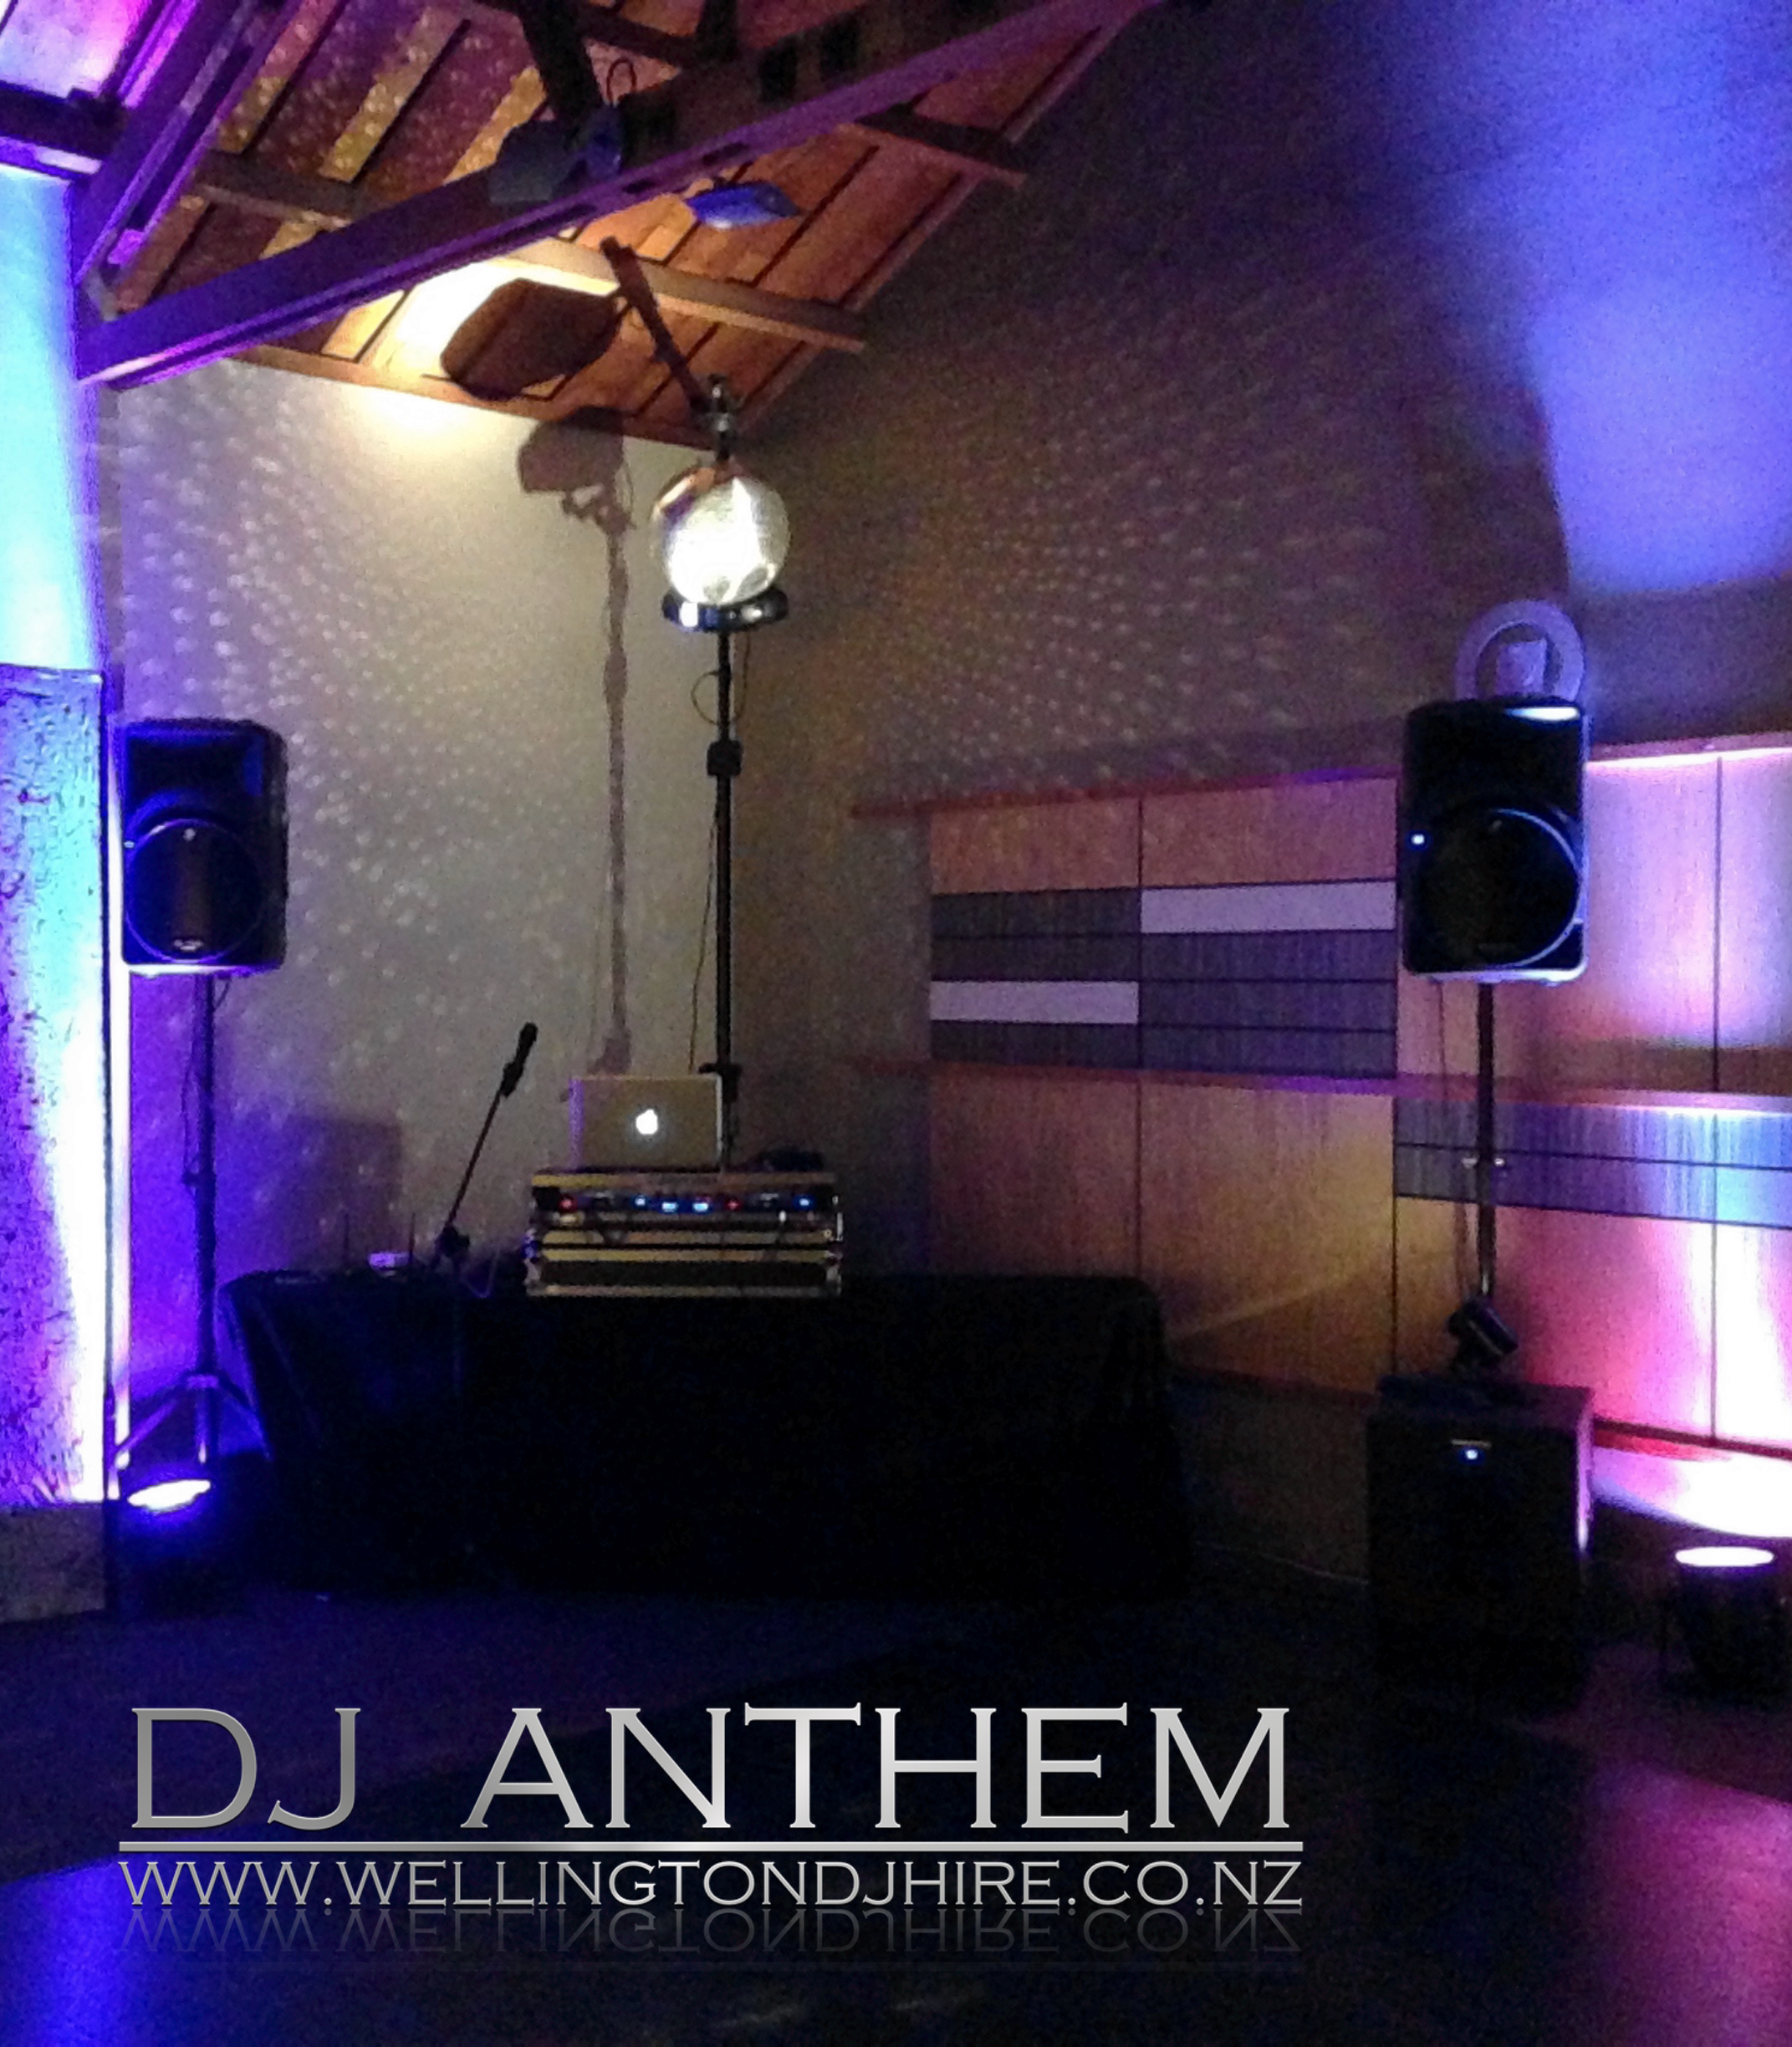 z Wellington DJ hire DJ setup with Mirror ball.jpg